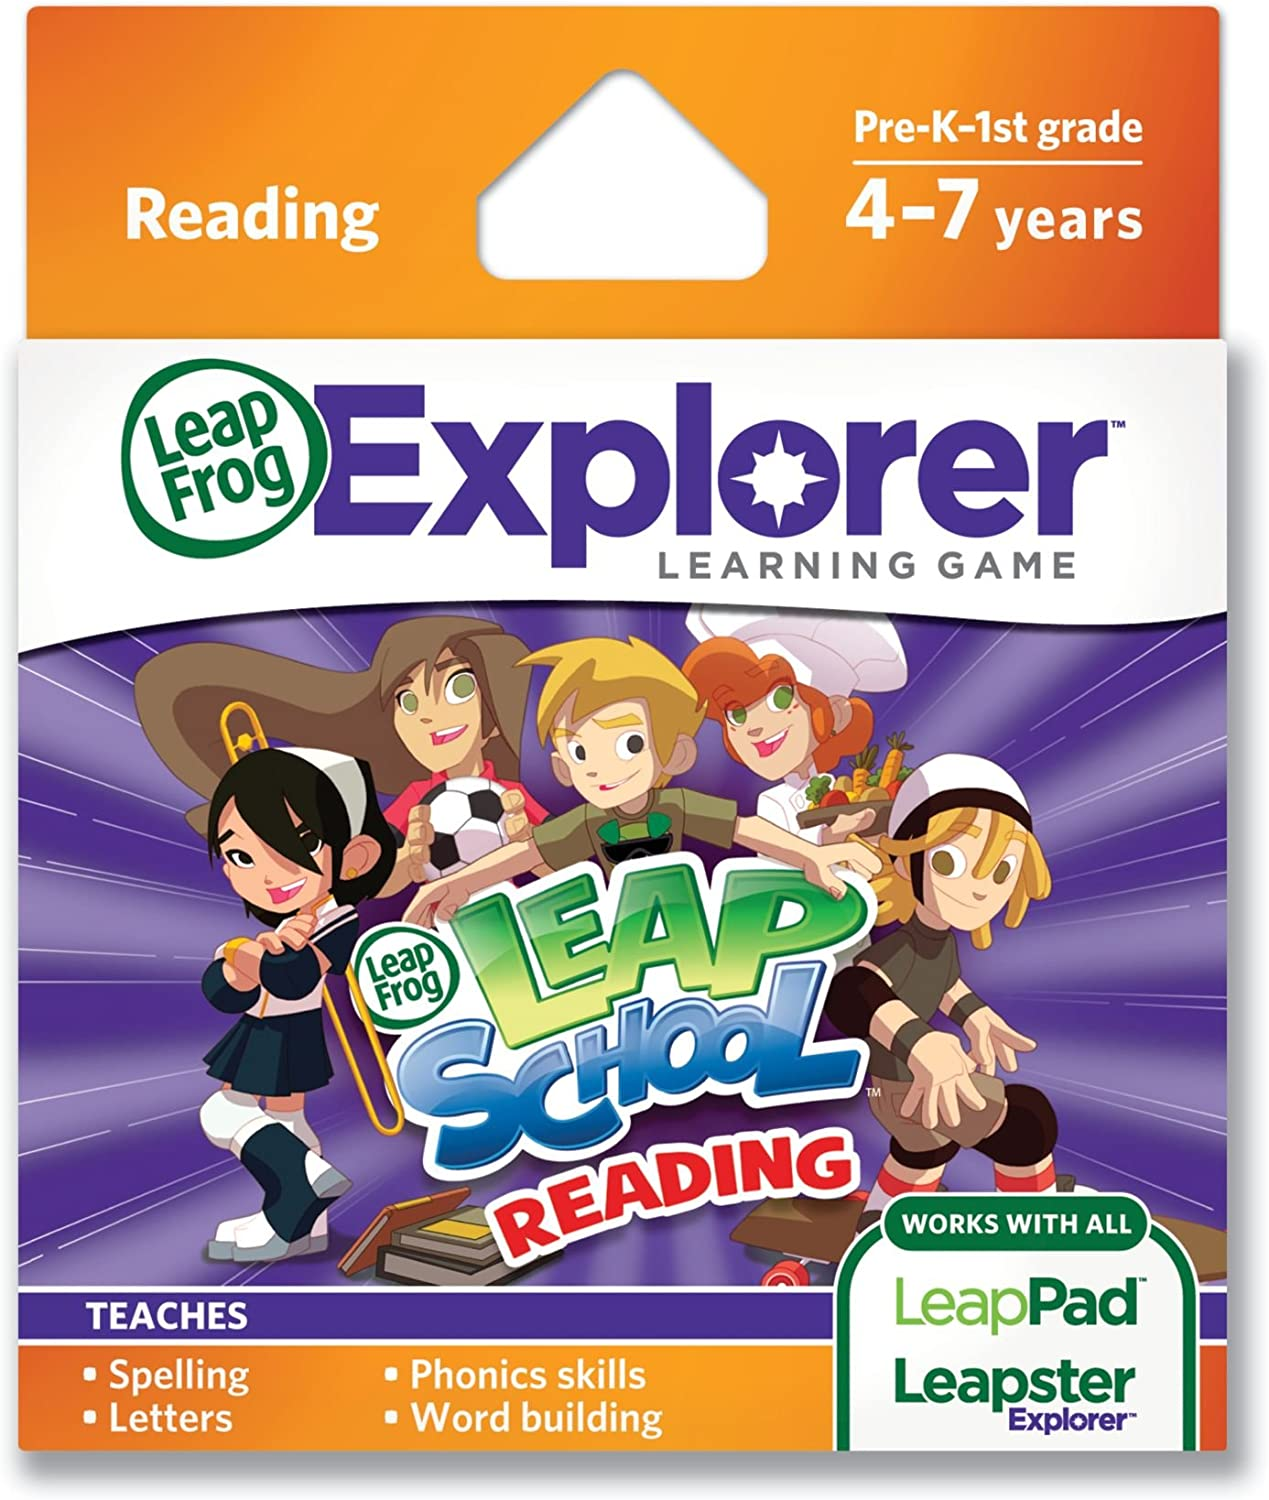 LeapFrog LeapSchool Reading Learning Game Great interest Recommended with LeapPad Ta works